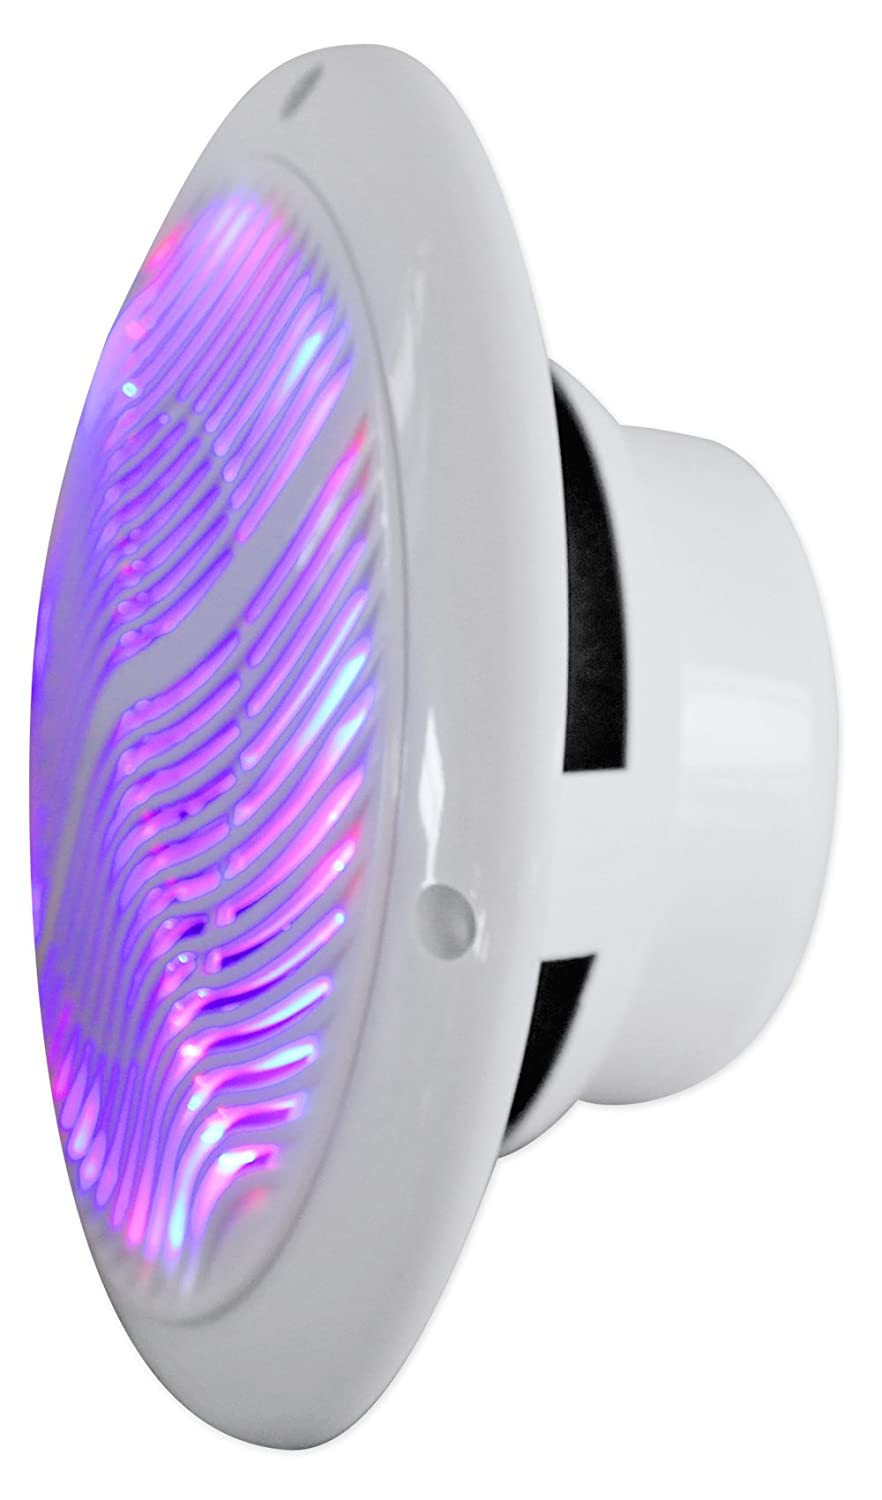 Rockville Rmc65lw 6.5-Inch 600w 2-Way White Marine Speakers with Multi Color Led Plus Remote